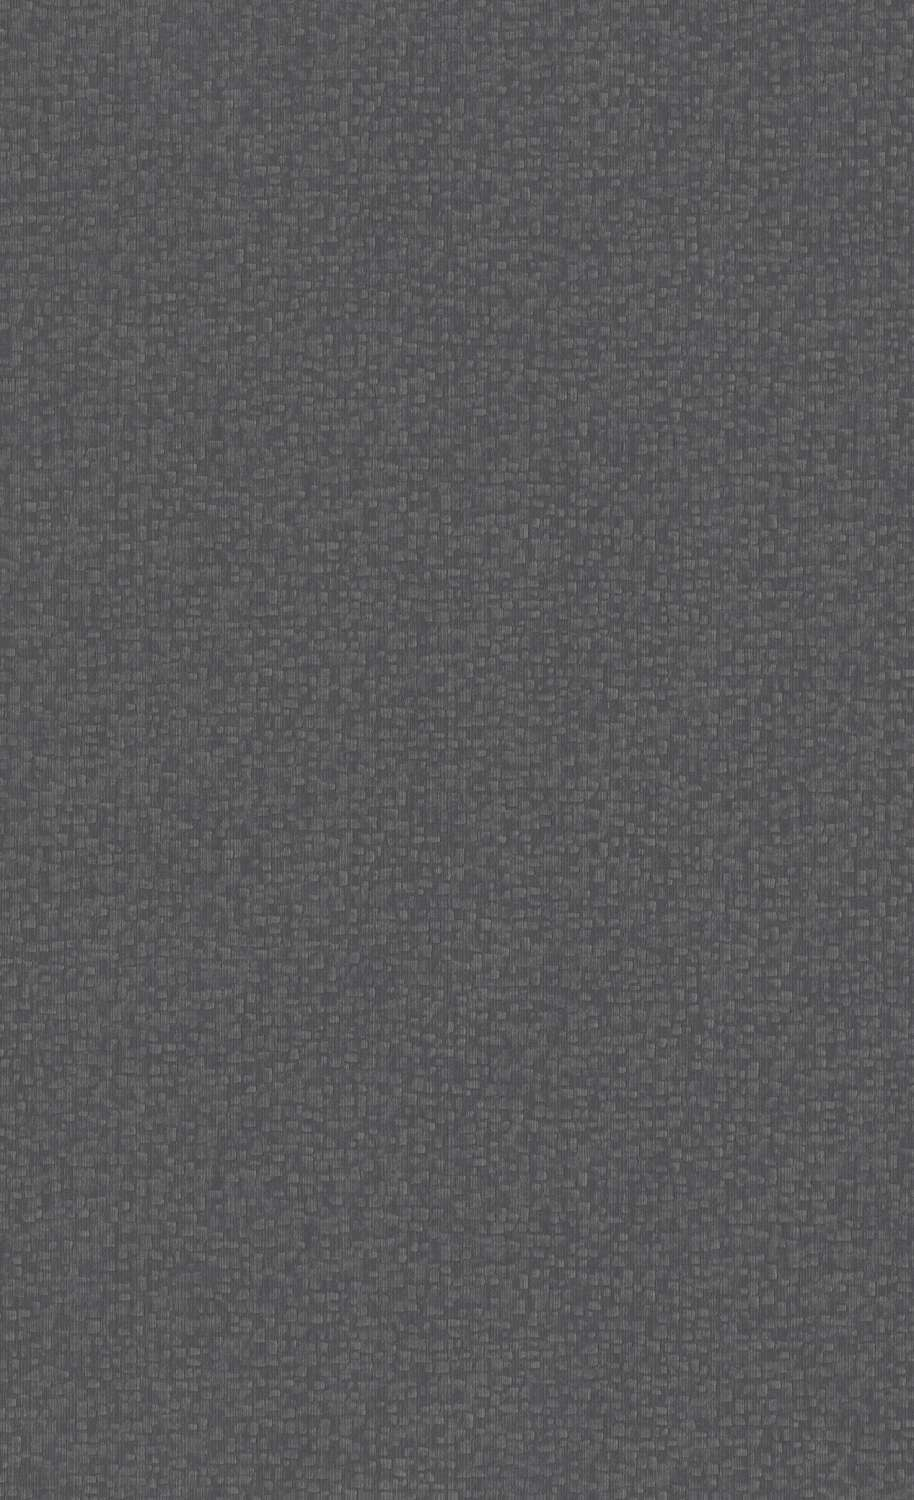 Lima Textured Cobble